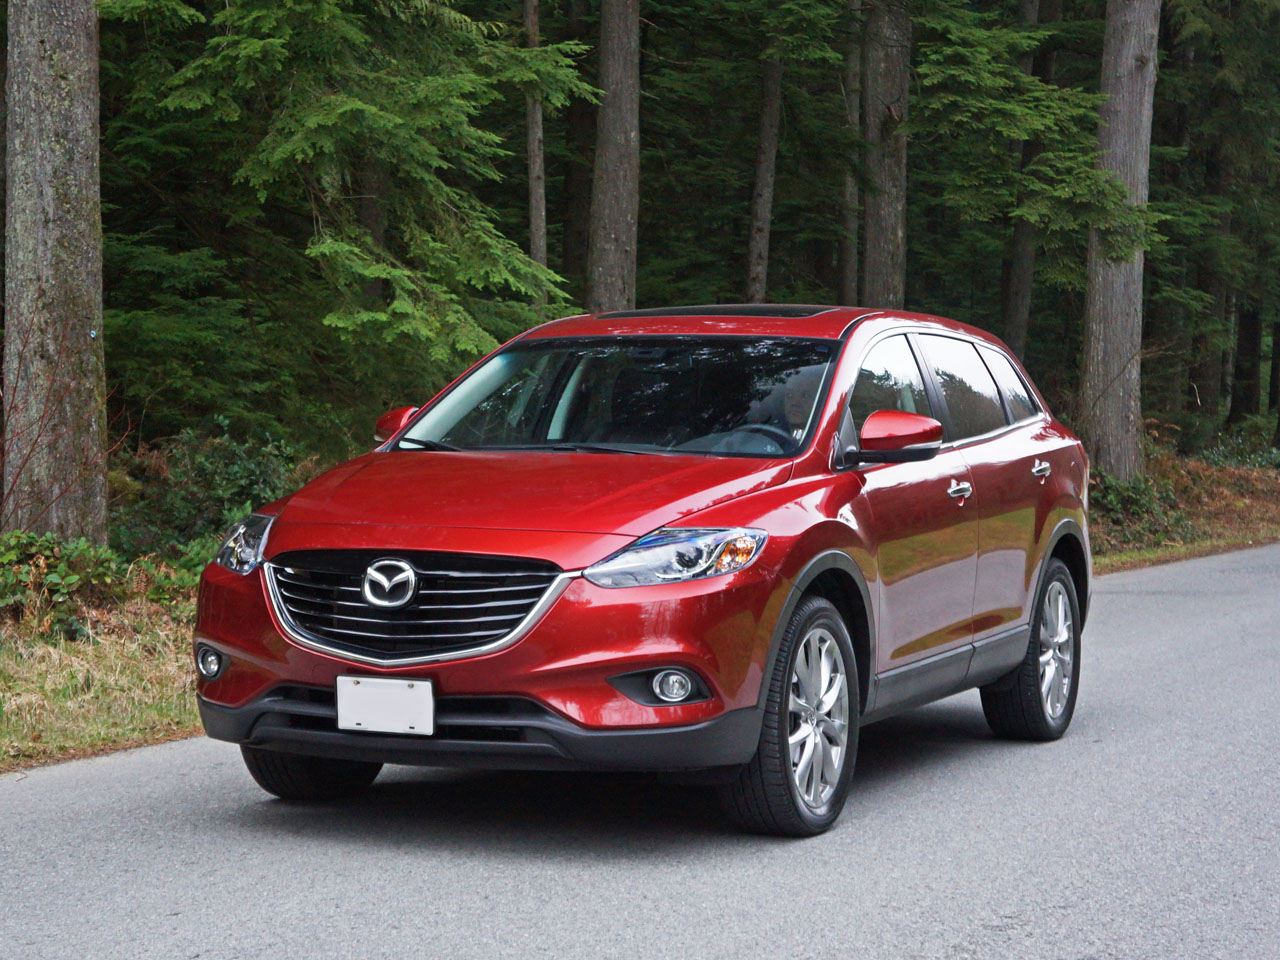 2015 Mazda Cx 9 Gt Awd Road Test Review Carcostcanada